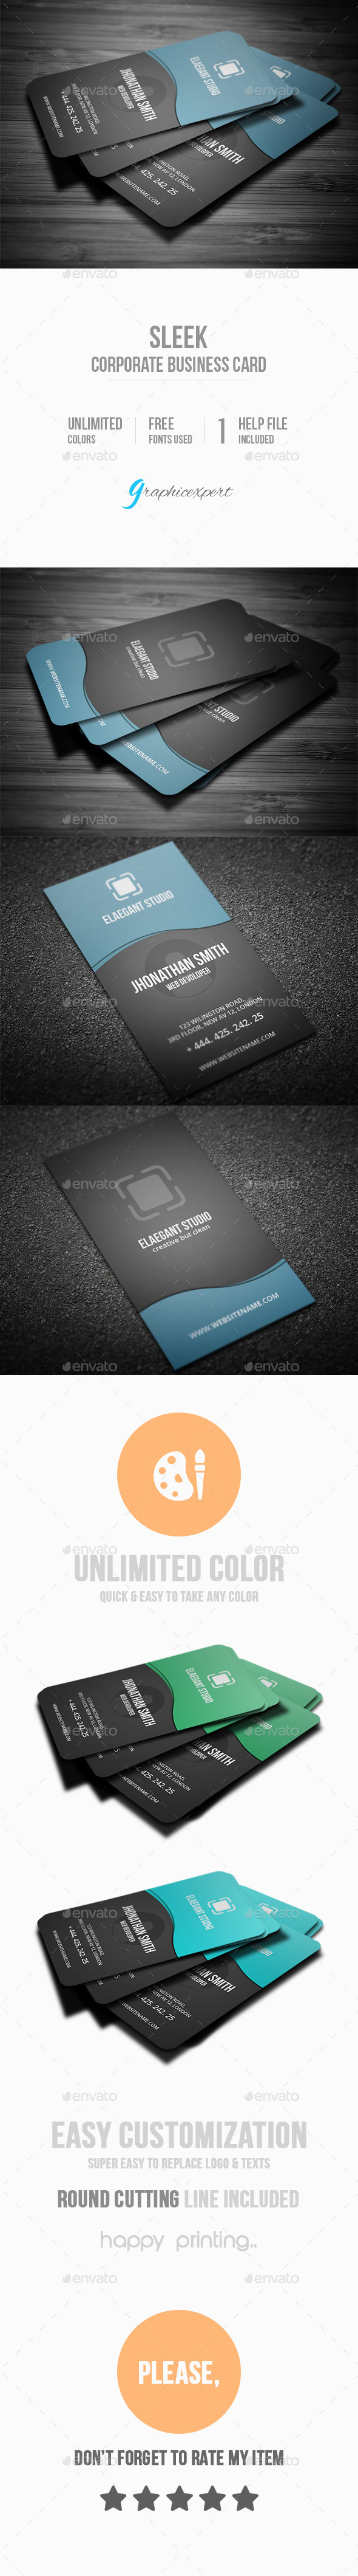 GraphicRiver Corporate Business Card 10185235